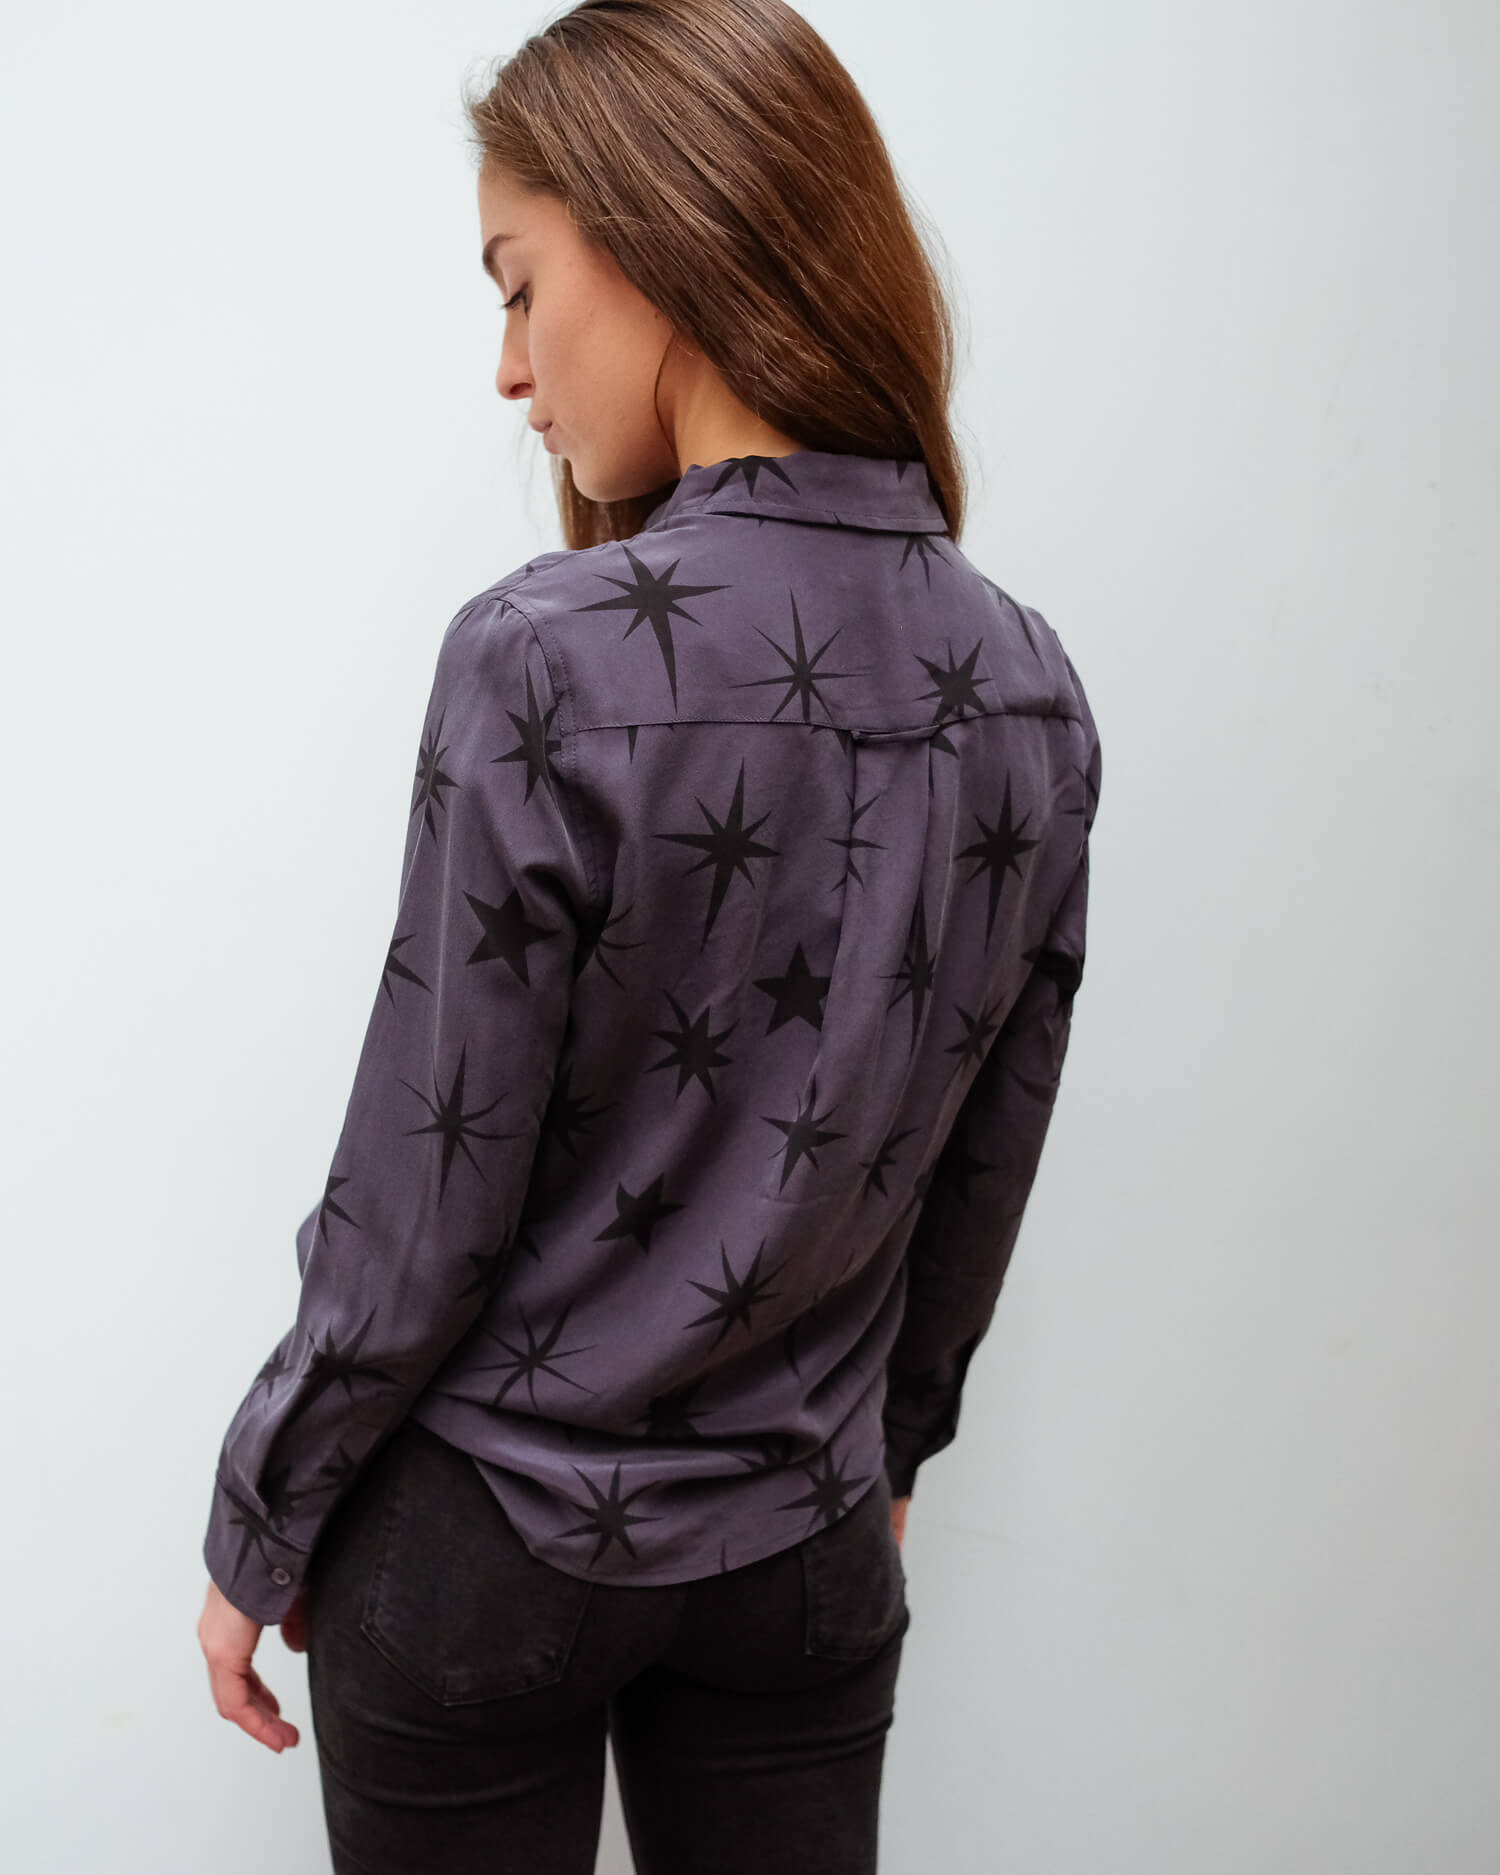 R Kate shirt in charcoal constellations